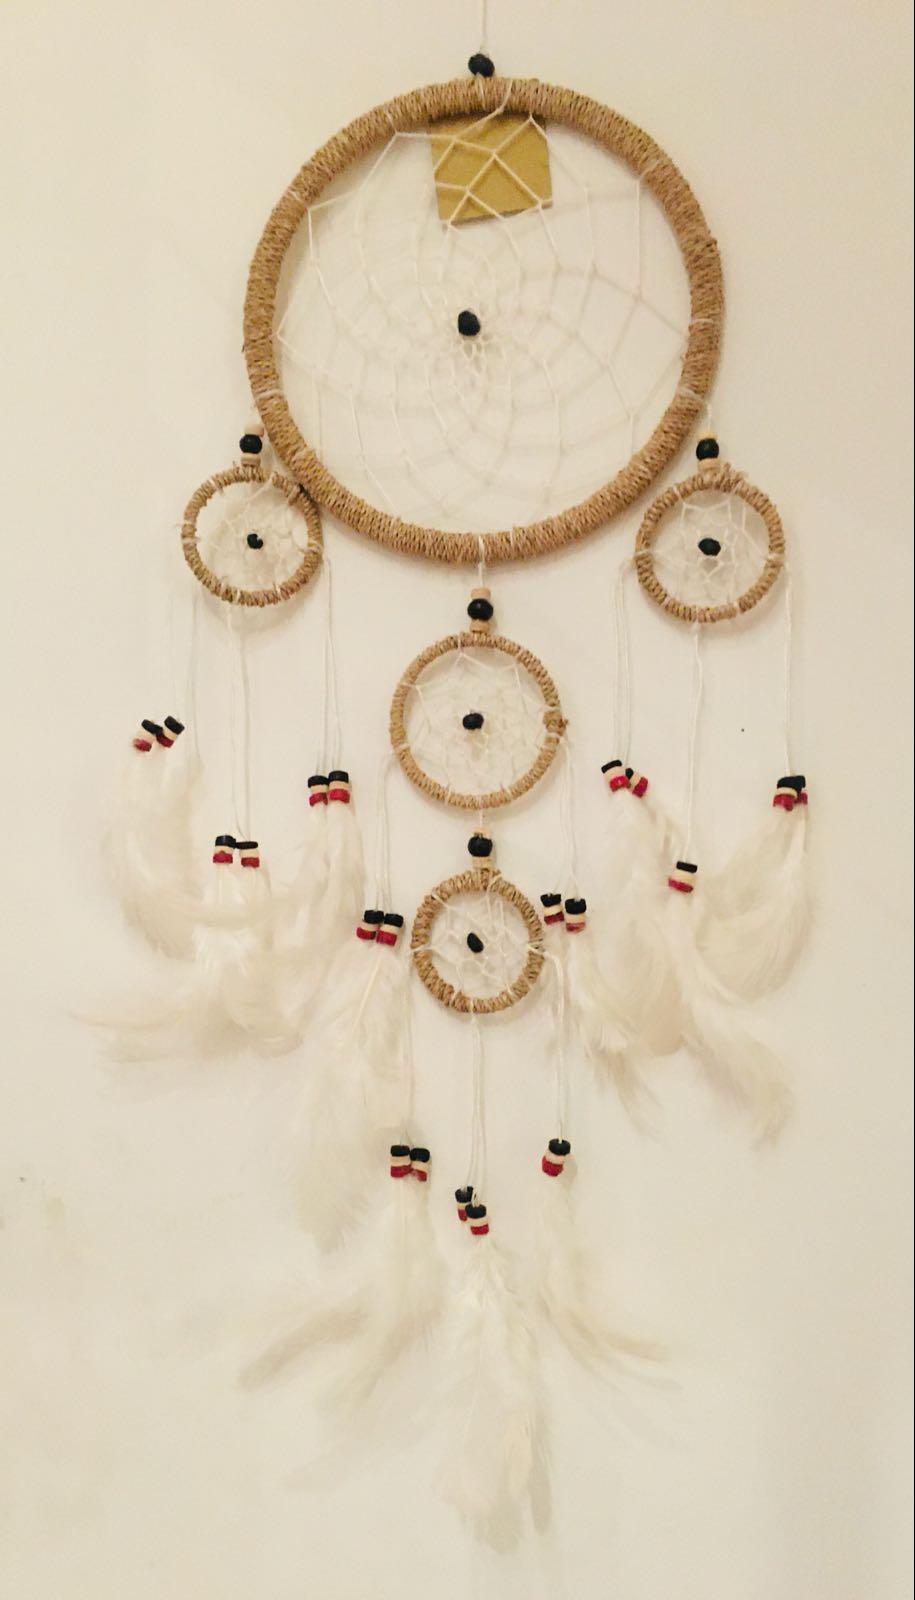 Large Dreamcatcher - 24 Inches